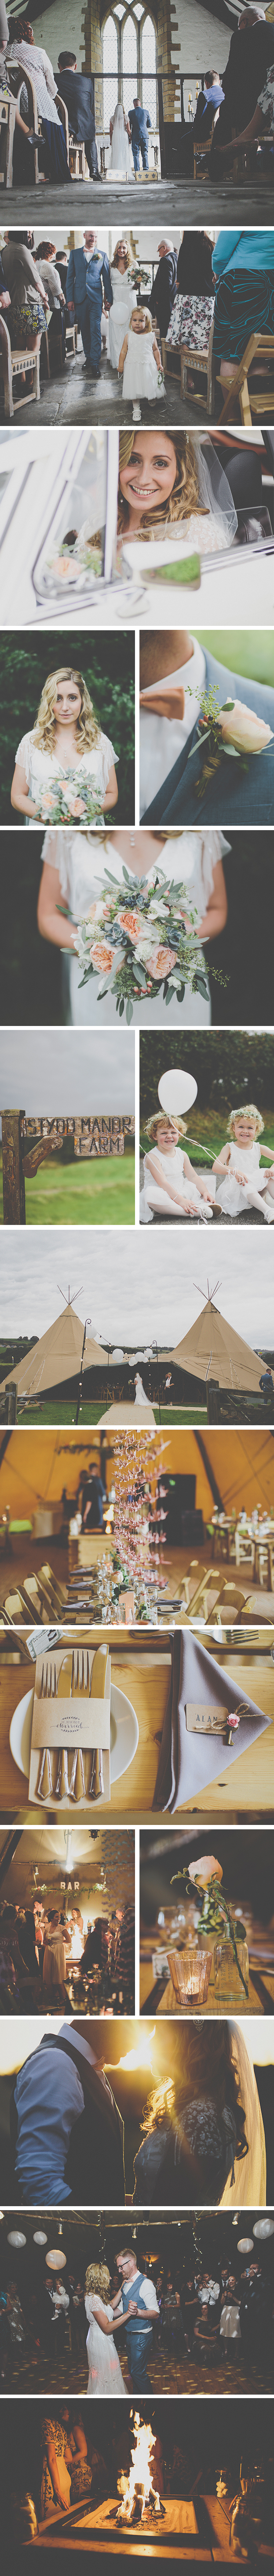 Rosie & Chris PapaKata Teepee Wedding at The Corporation Arms, Preston